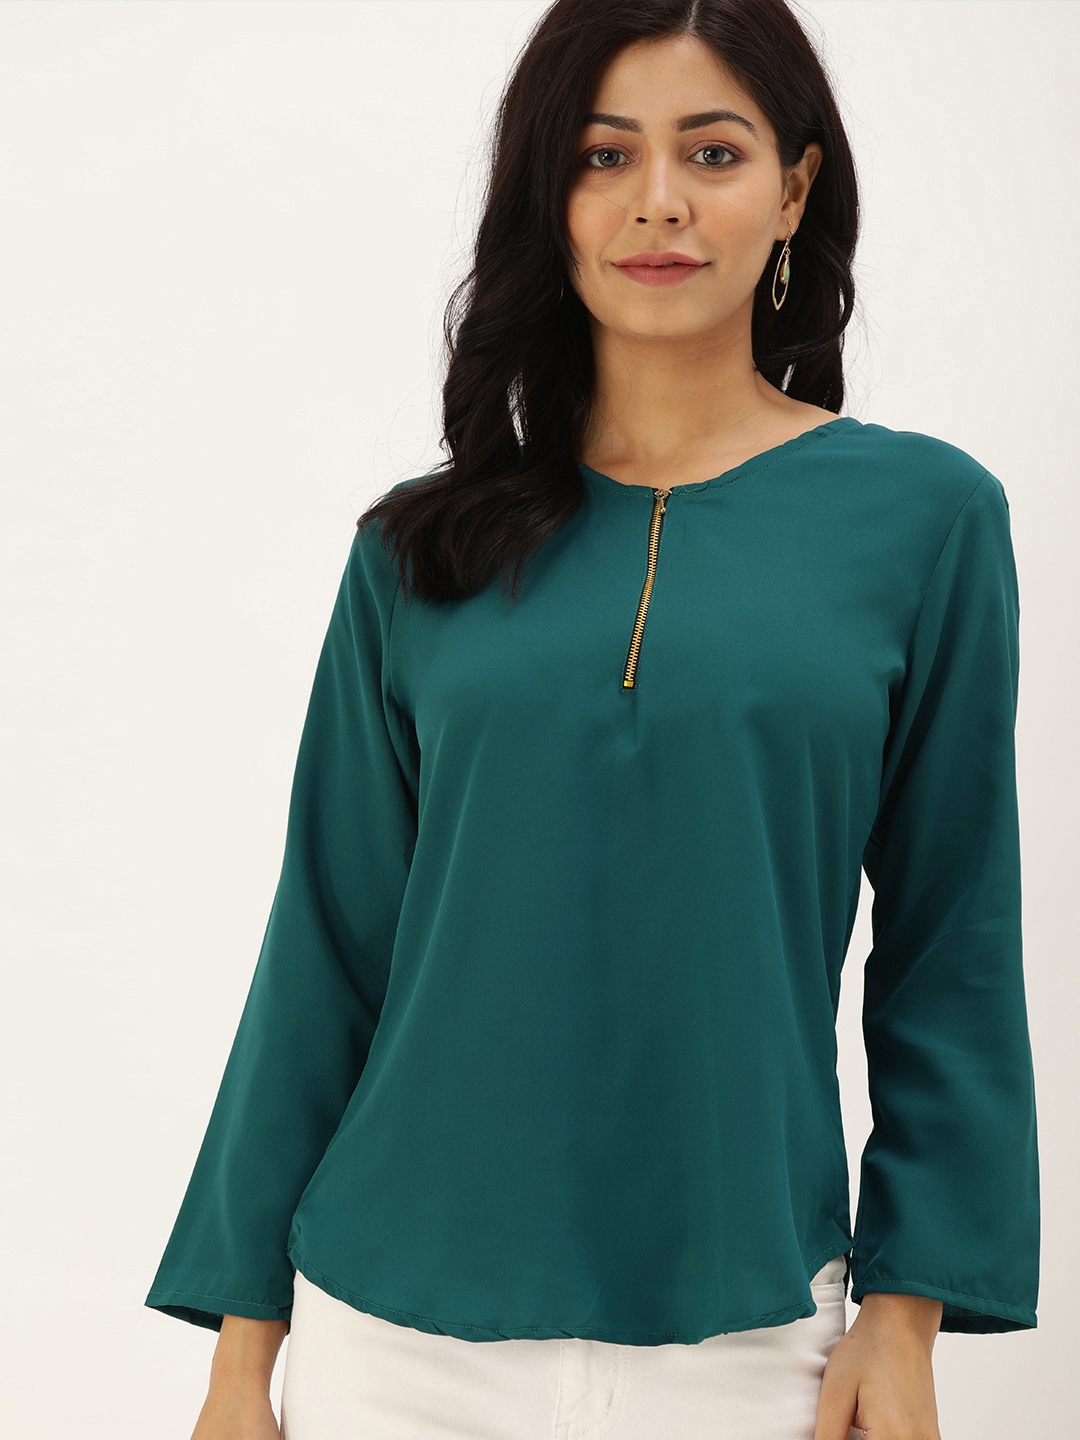 Mayra Women Green Solid Half Zipper Top